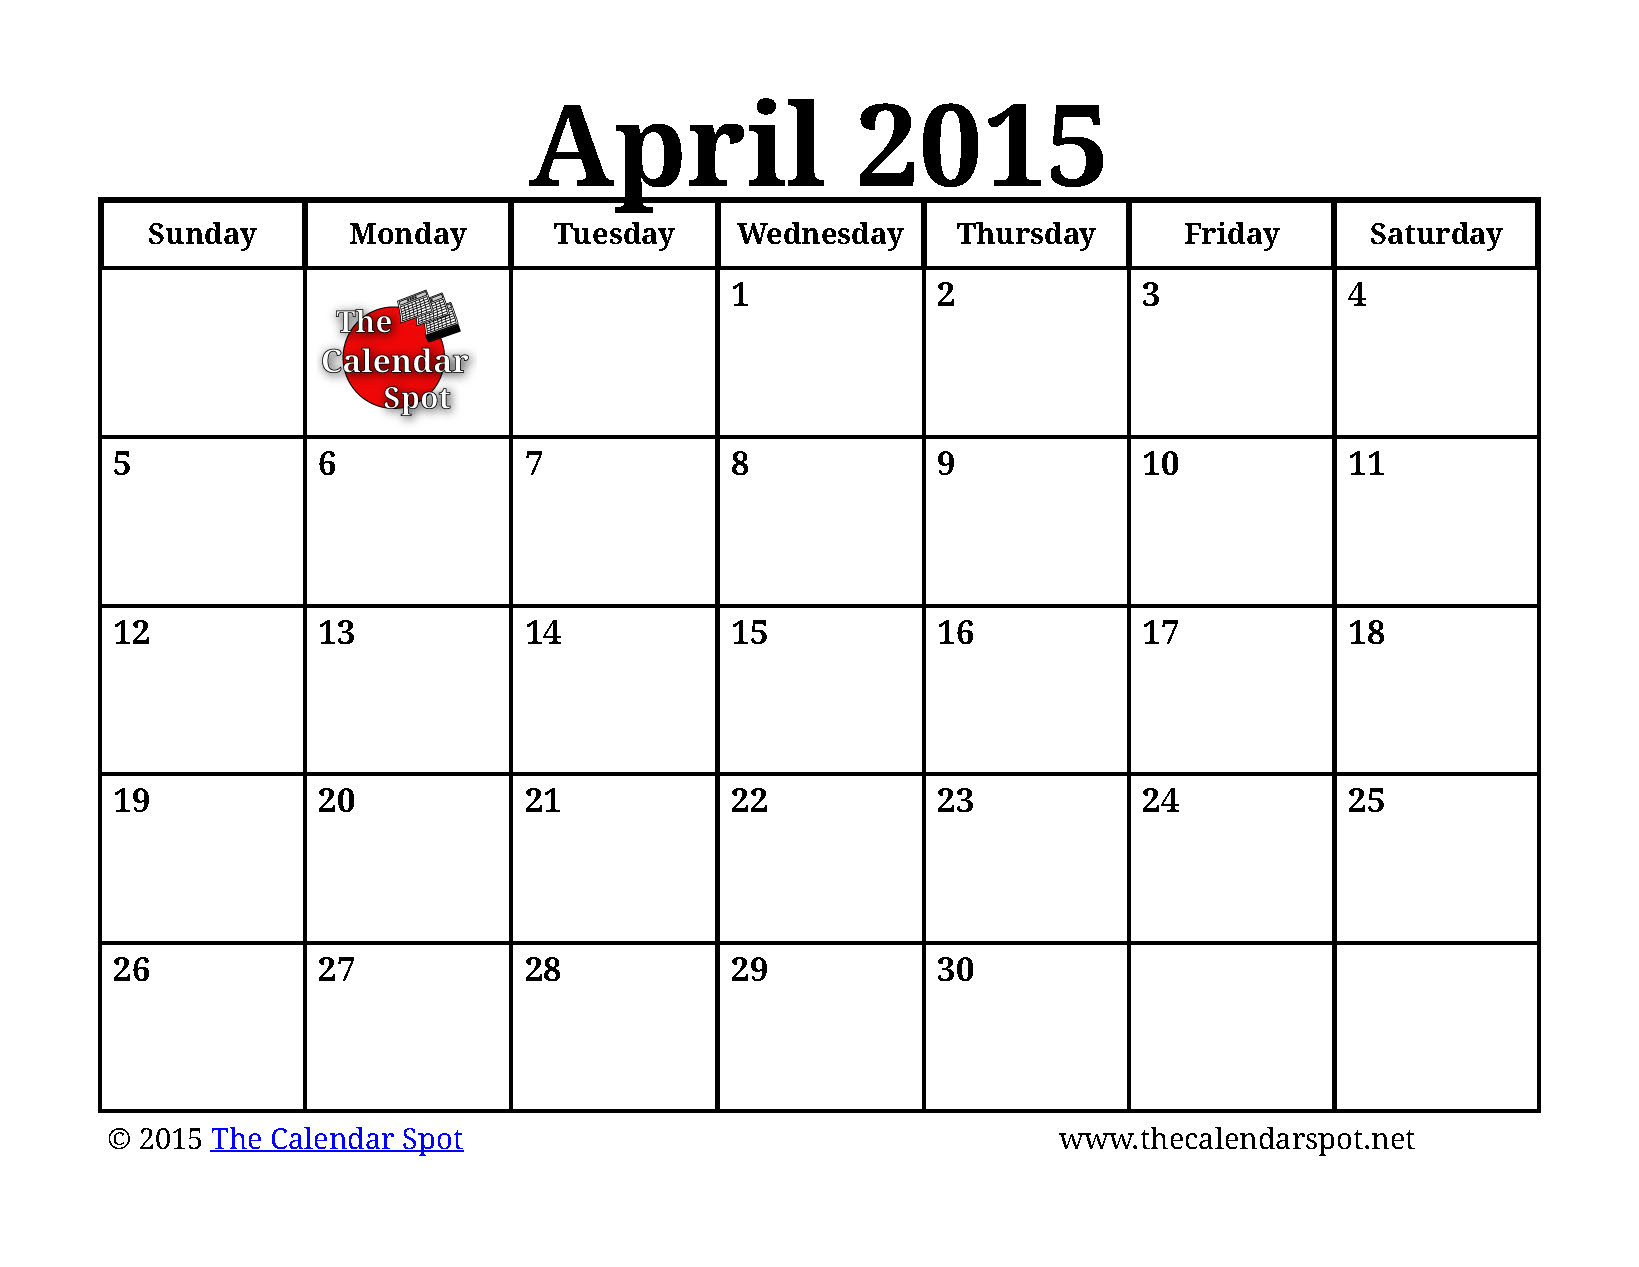 April 2015 Calendar 5 best images of april 2015 calendar printable ...